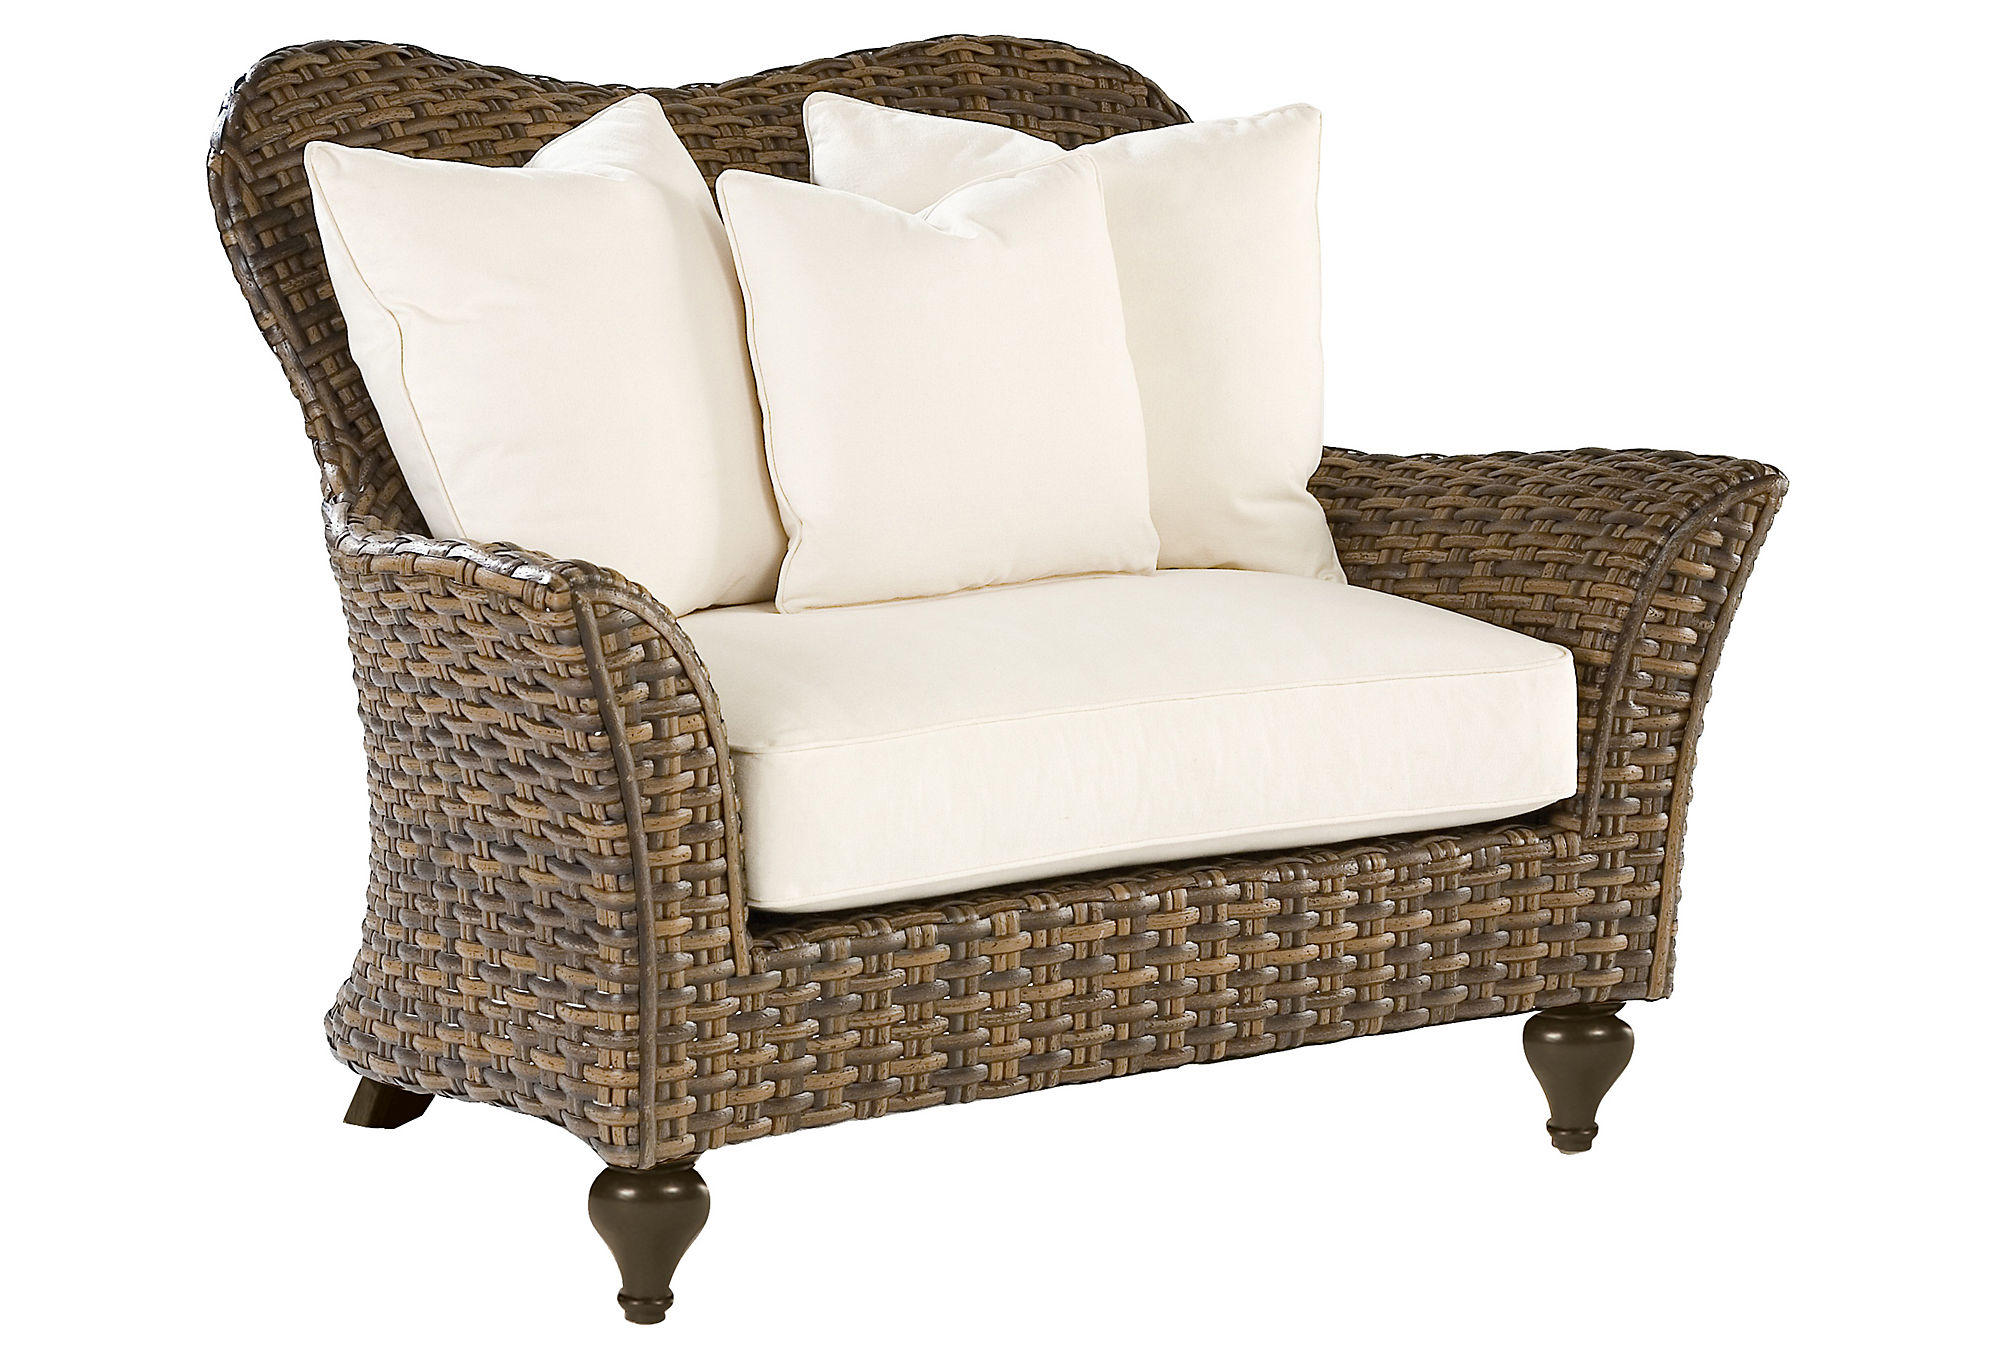 Snuggle Chairs Lane Venture Cameroon Cuddle Chair From One Kings Lane